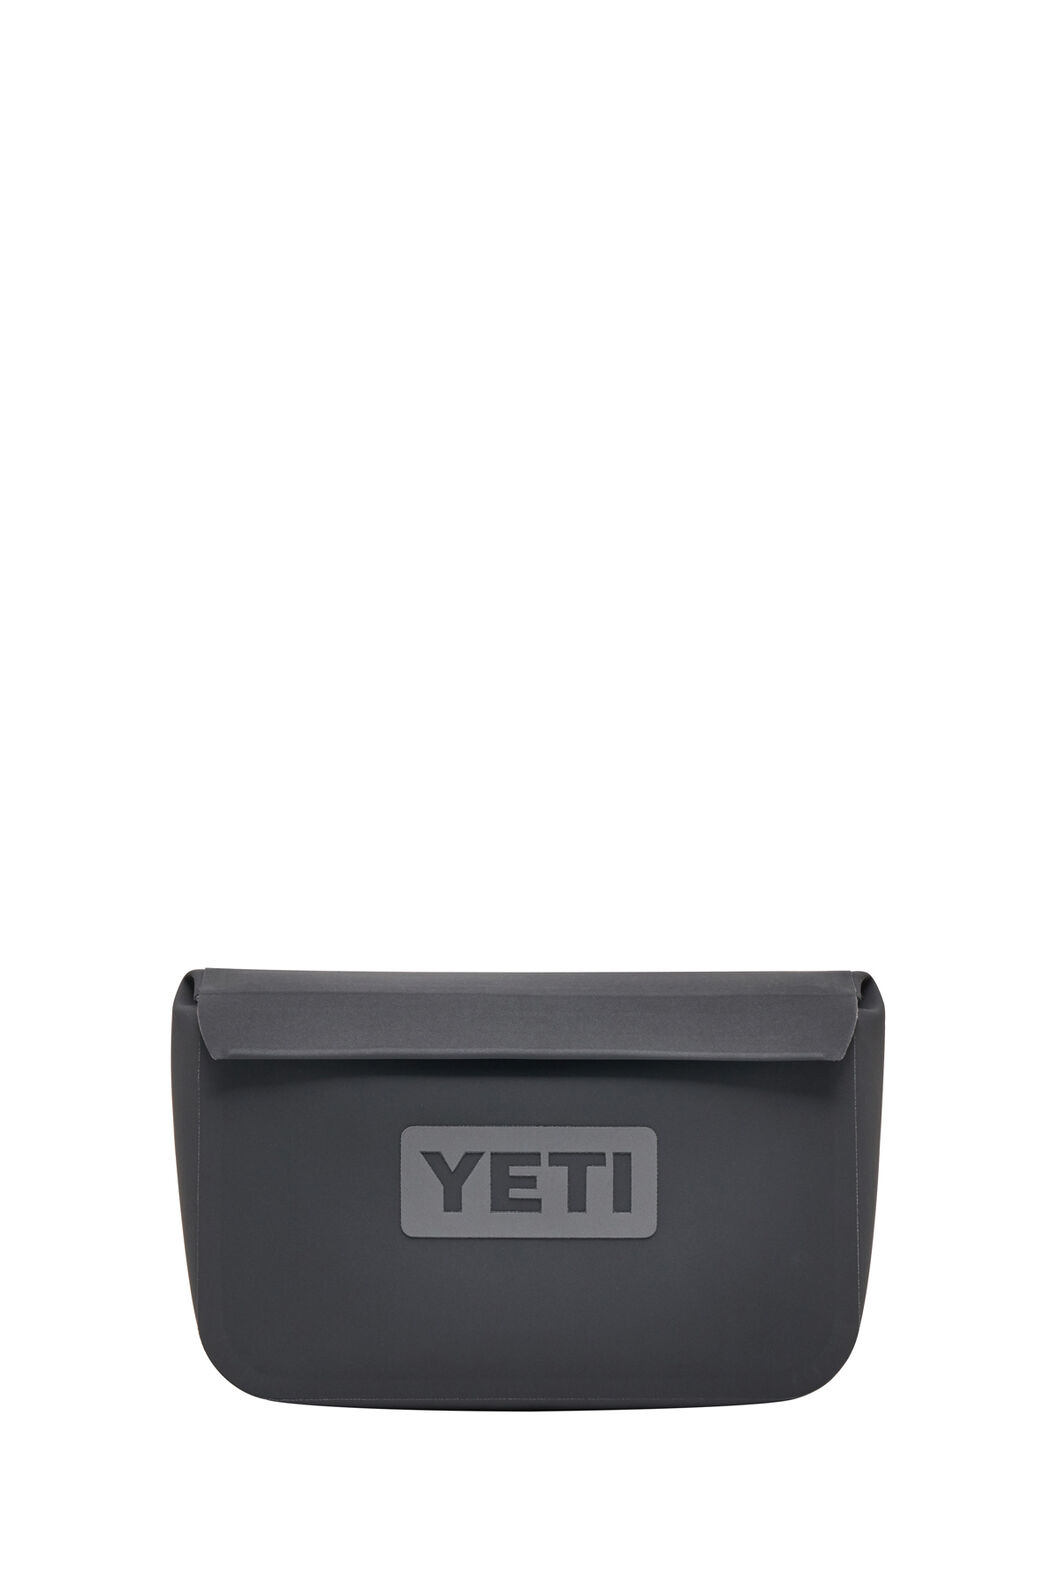 Yeti Hopper Sidekick Dry Soft Cooler, Charcoal, hi-res